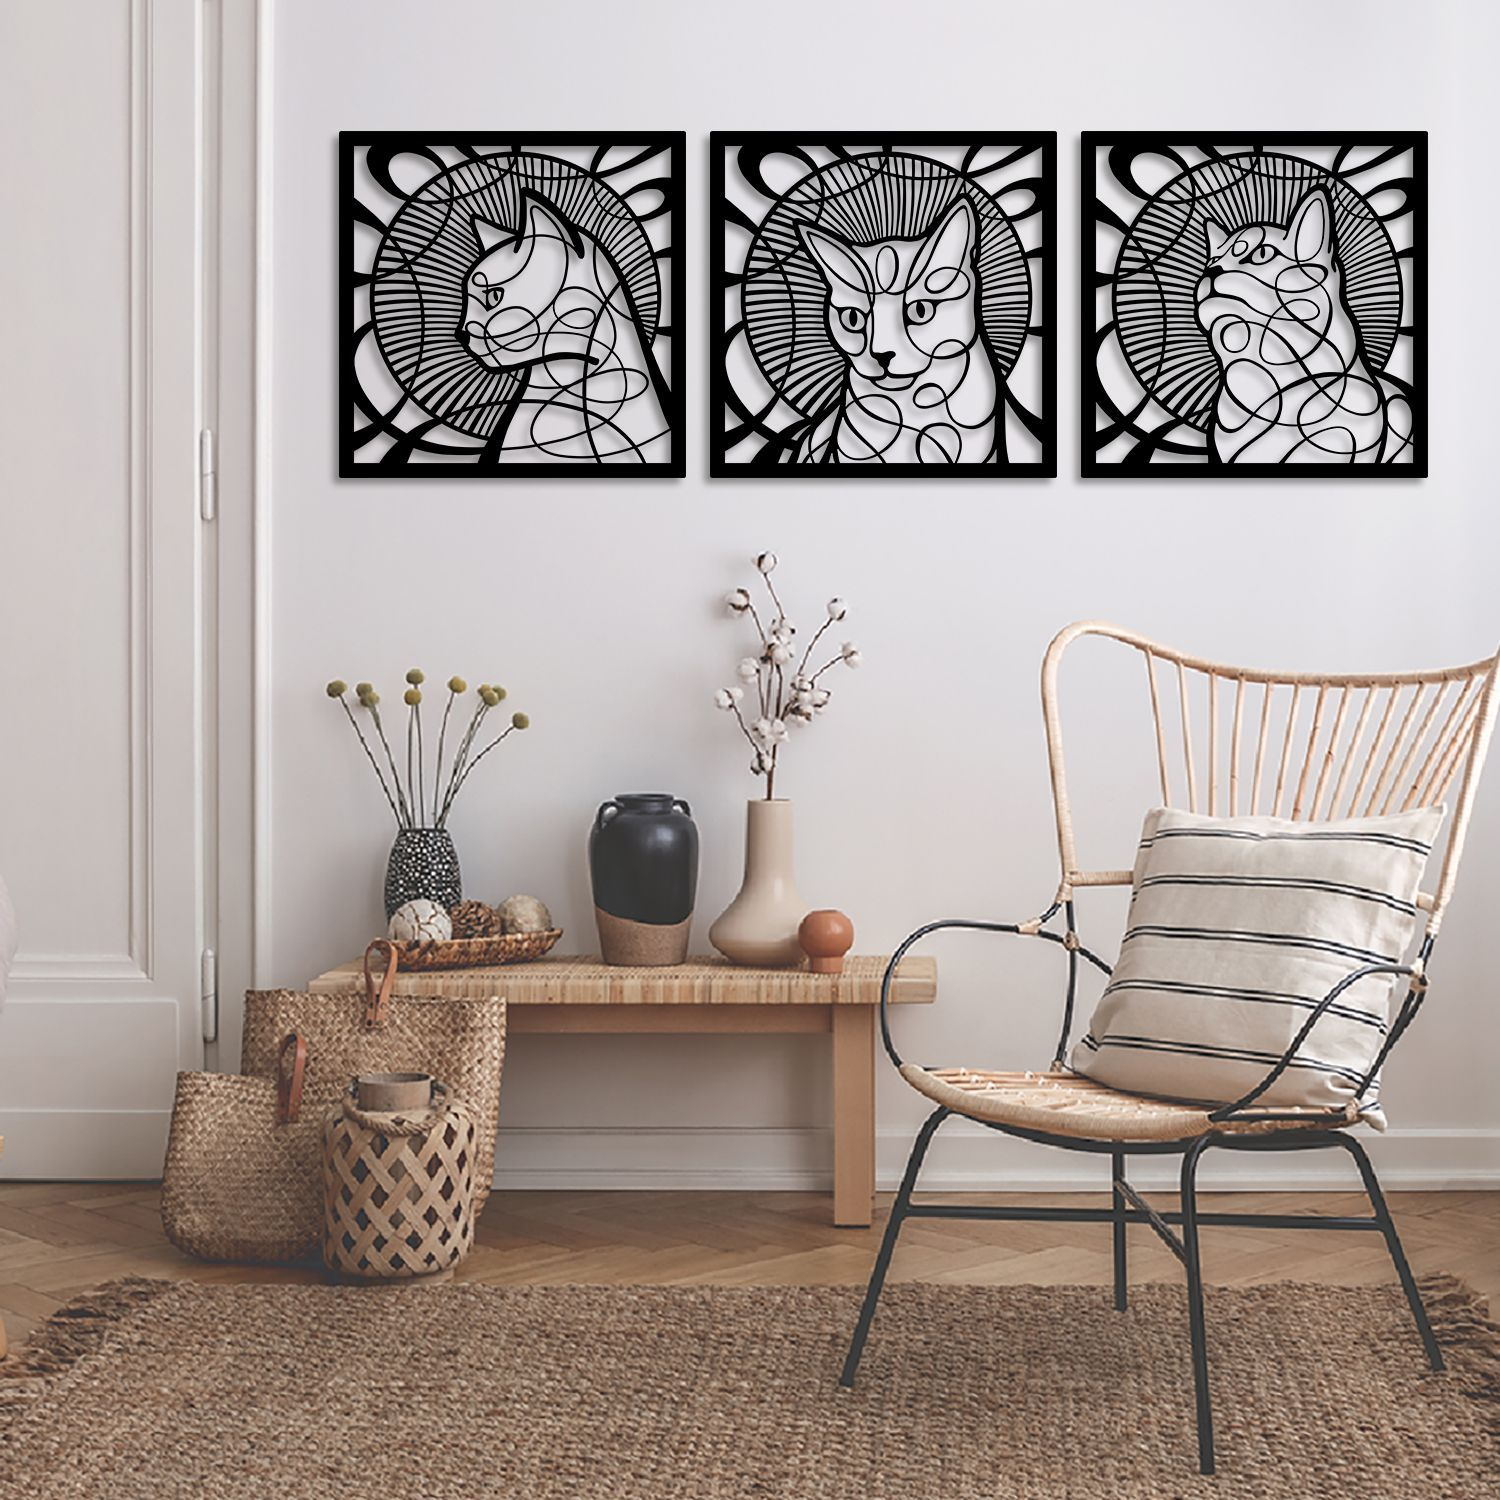 Cat Portraits 3 Set Metal Wall Art Apt301 Black Modern Home Decor Artepera Metal Wall Hangings Cat Wall Cat Wall Art